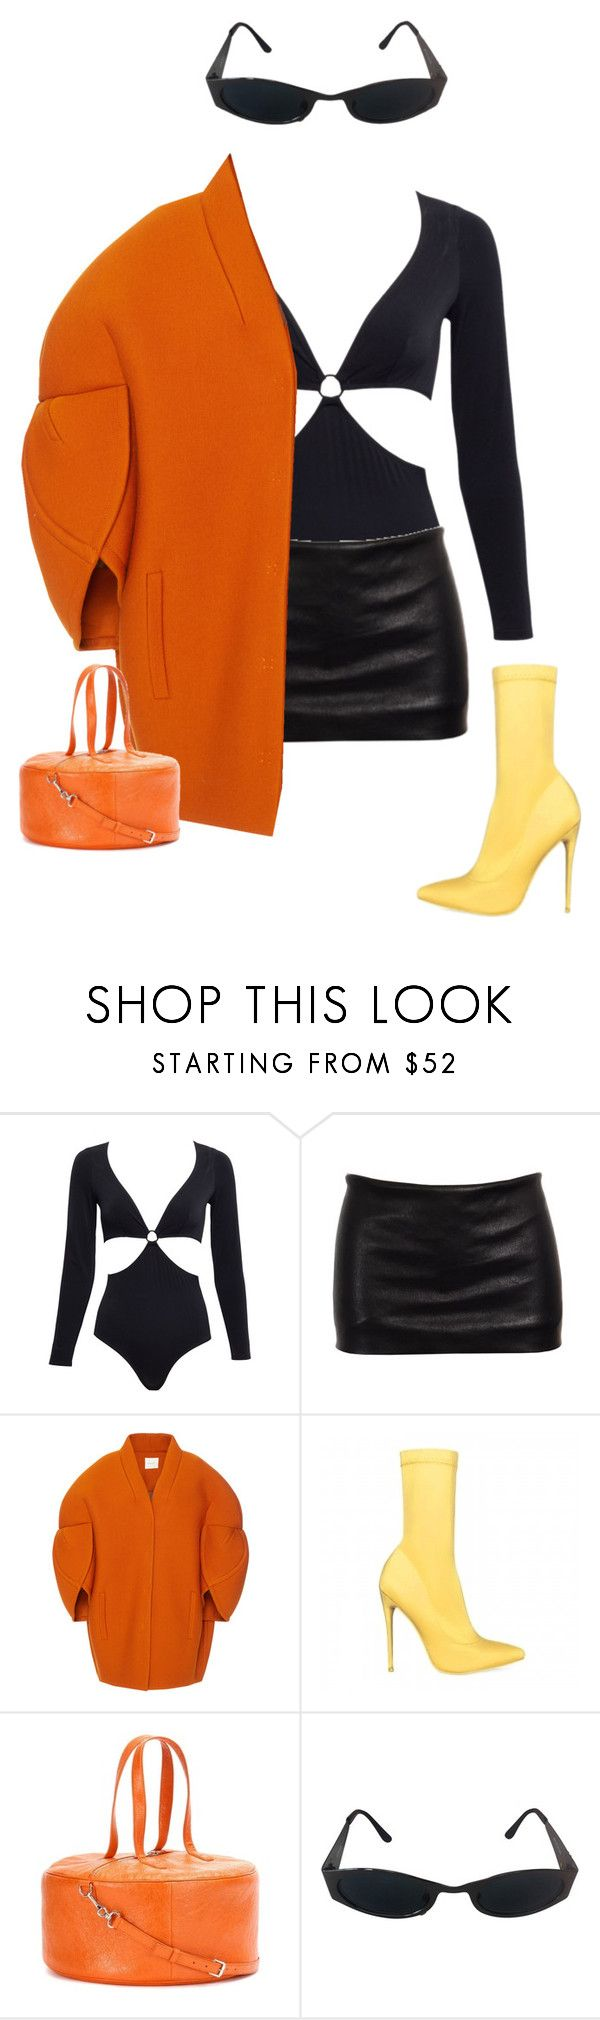 """""""Untitled #219"""" by luvtayy4ever ❤ liked on Polyvore featuring Morgan Lane, Ann Demeulemeester, Delpozo, Balenciaga, Versace and vintage"""